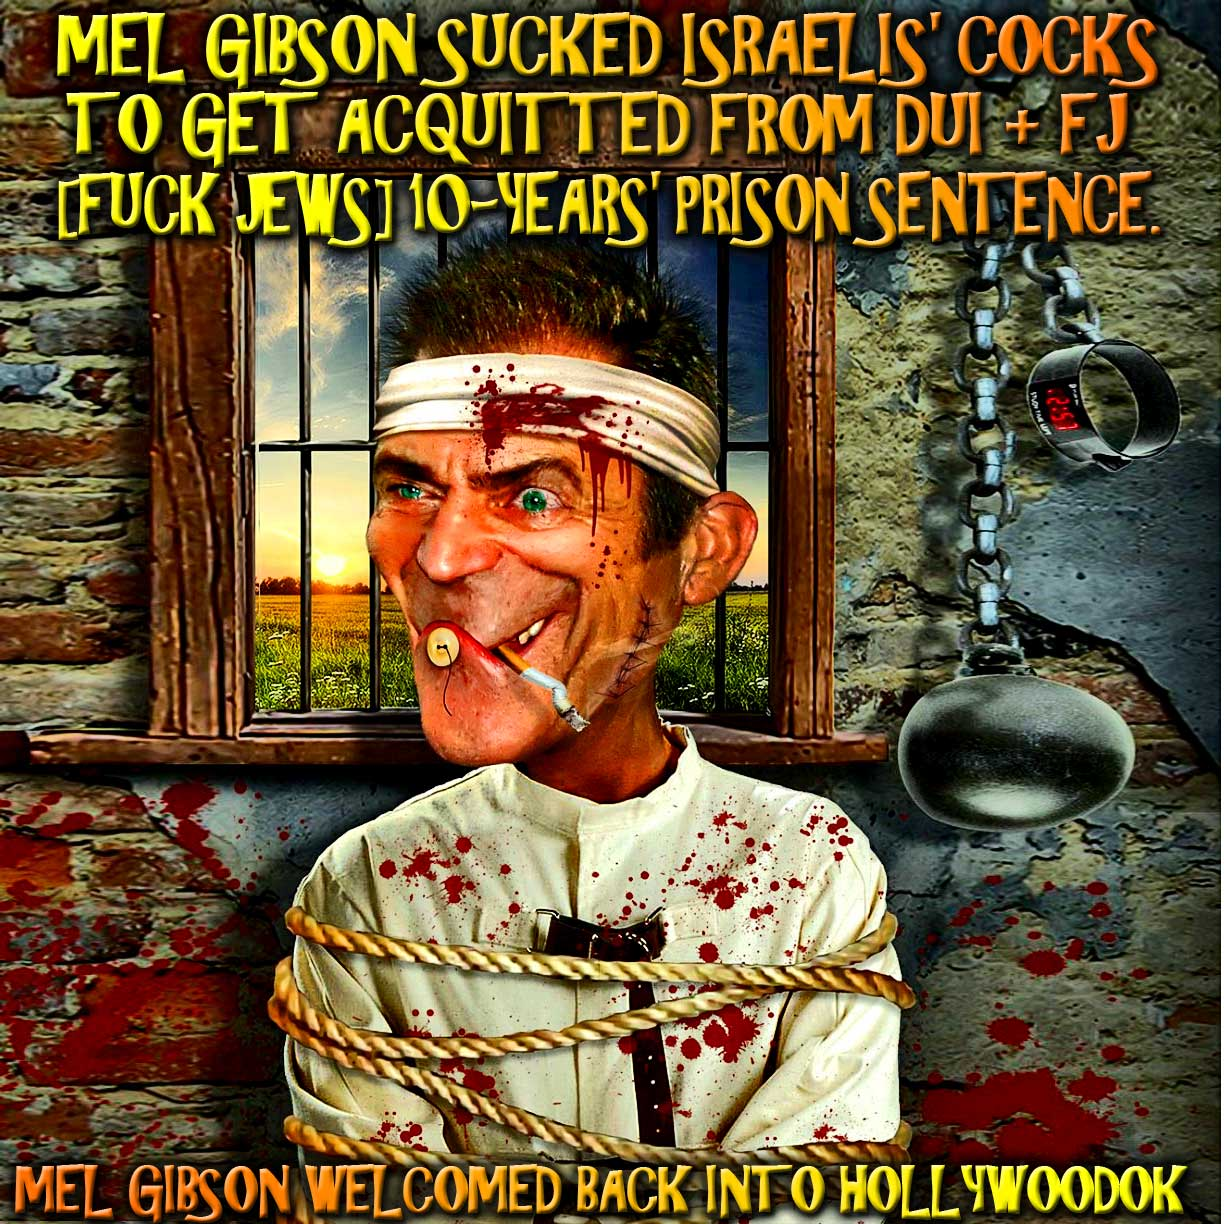 Mel Gibson sucked Israelis' Cocks to get acquitted from DUI + [FUCK JEWS] 10-years' prison sentence.